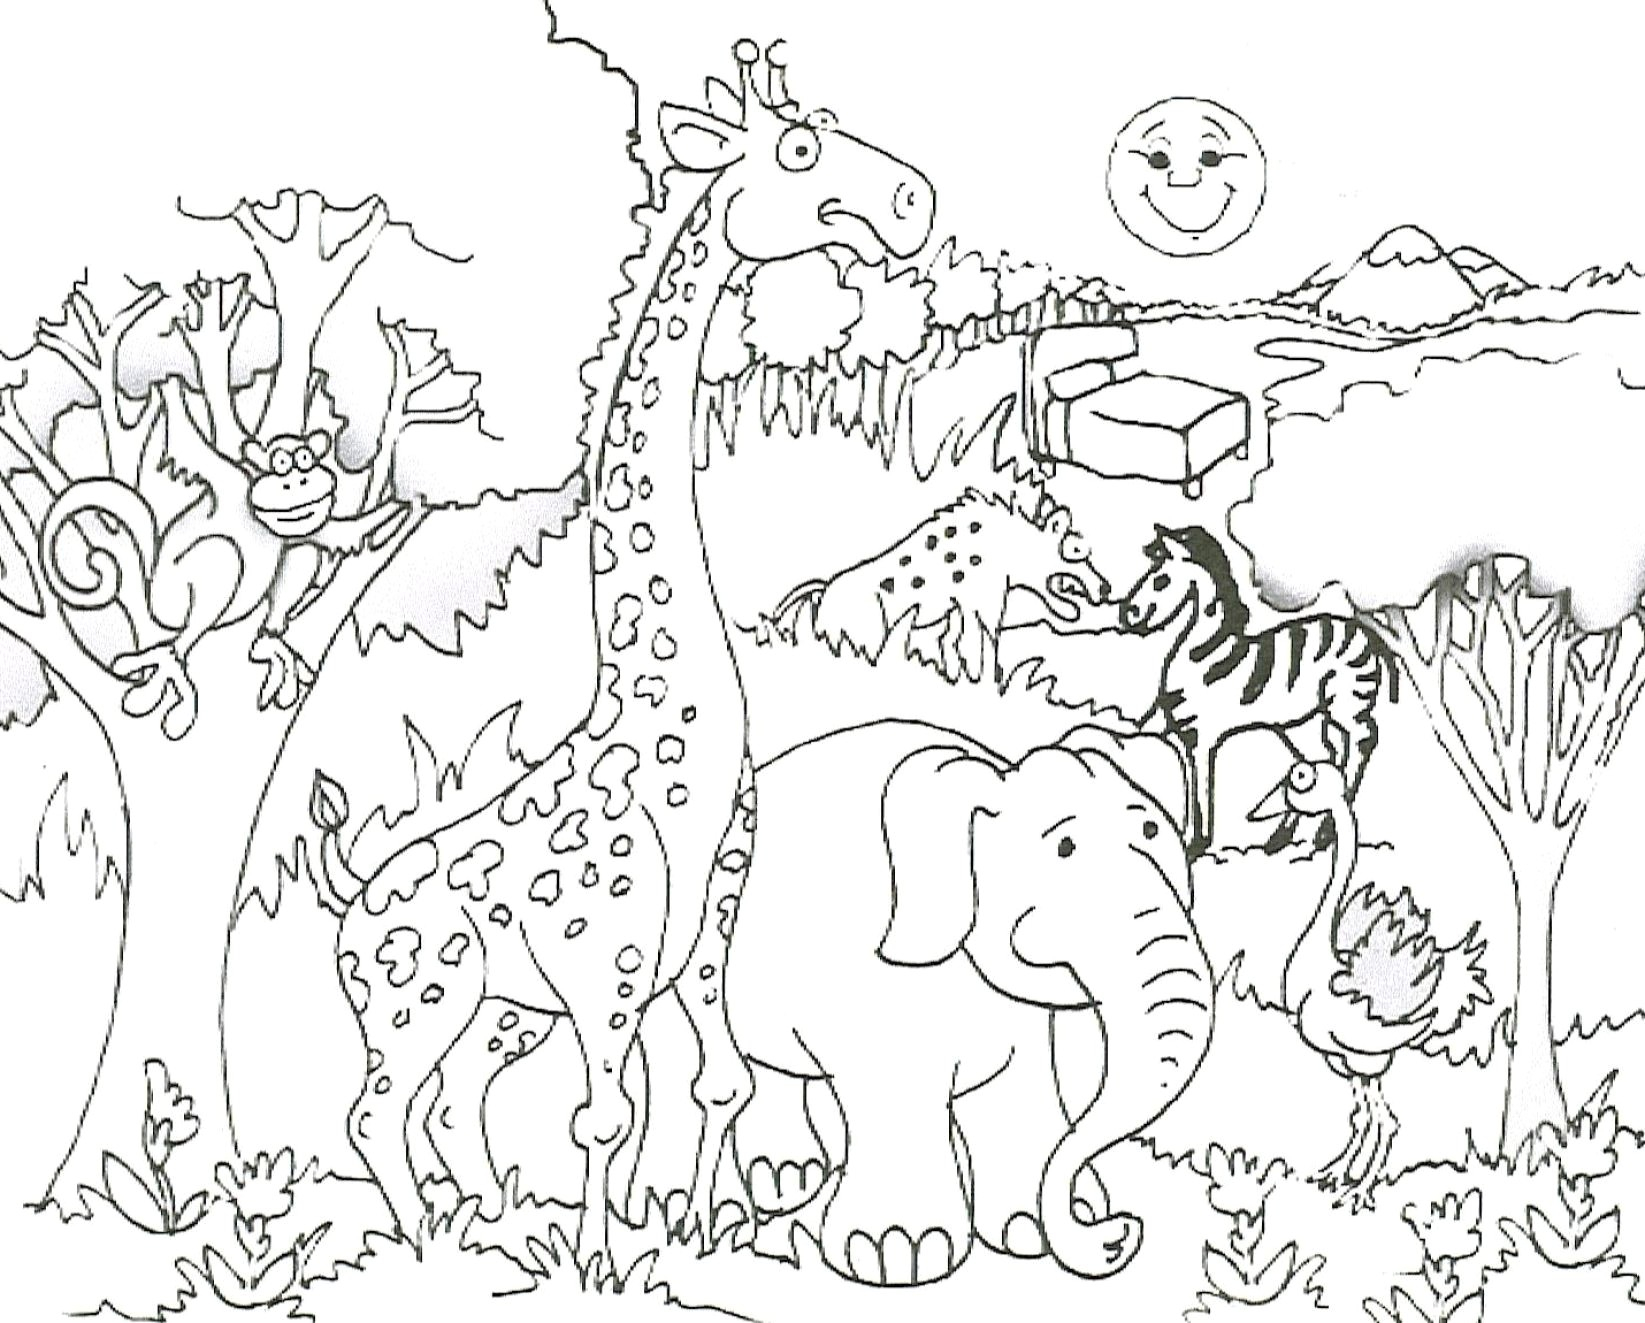 Zoo Animals Coloring Pages Zoo Animal Coloring Pages For Kids 17 F Pics Animals Telematik